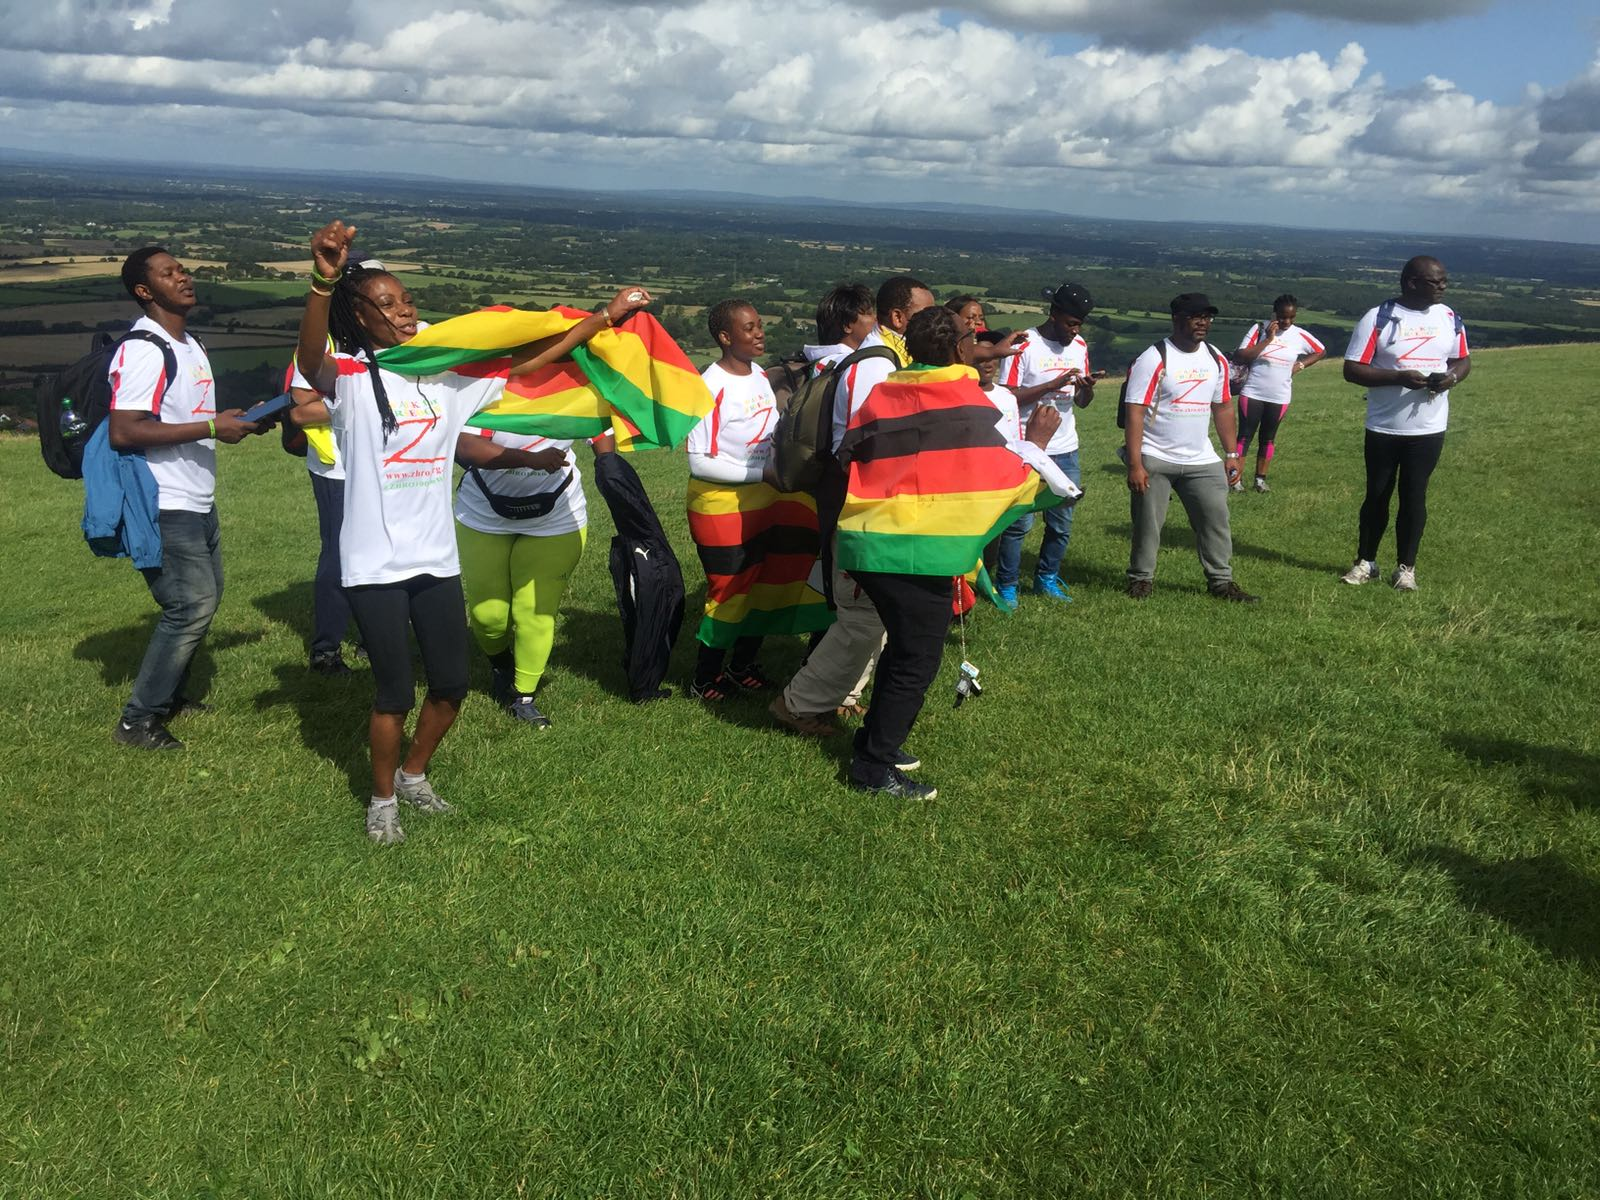 105km Walk for Freedom Devil's Dyke